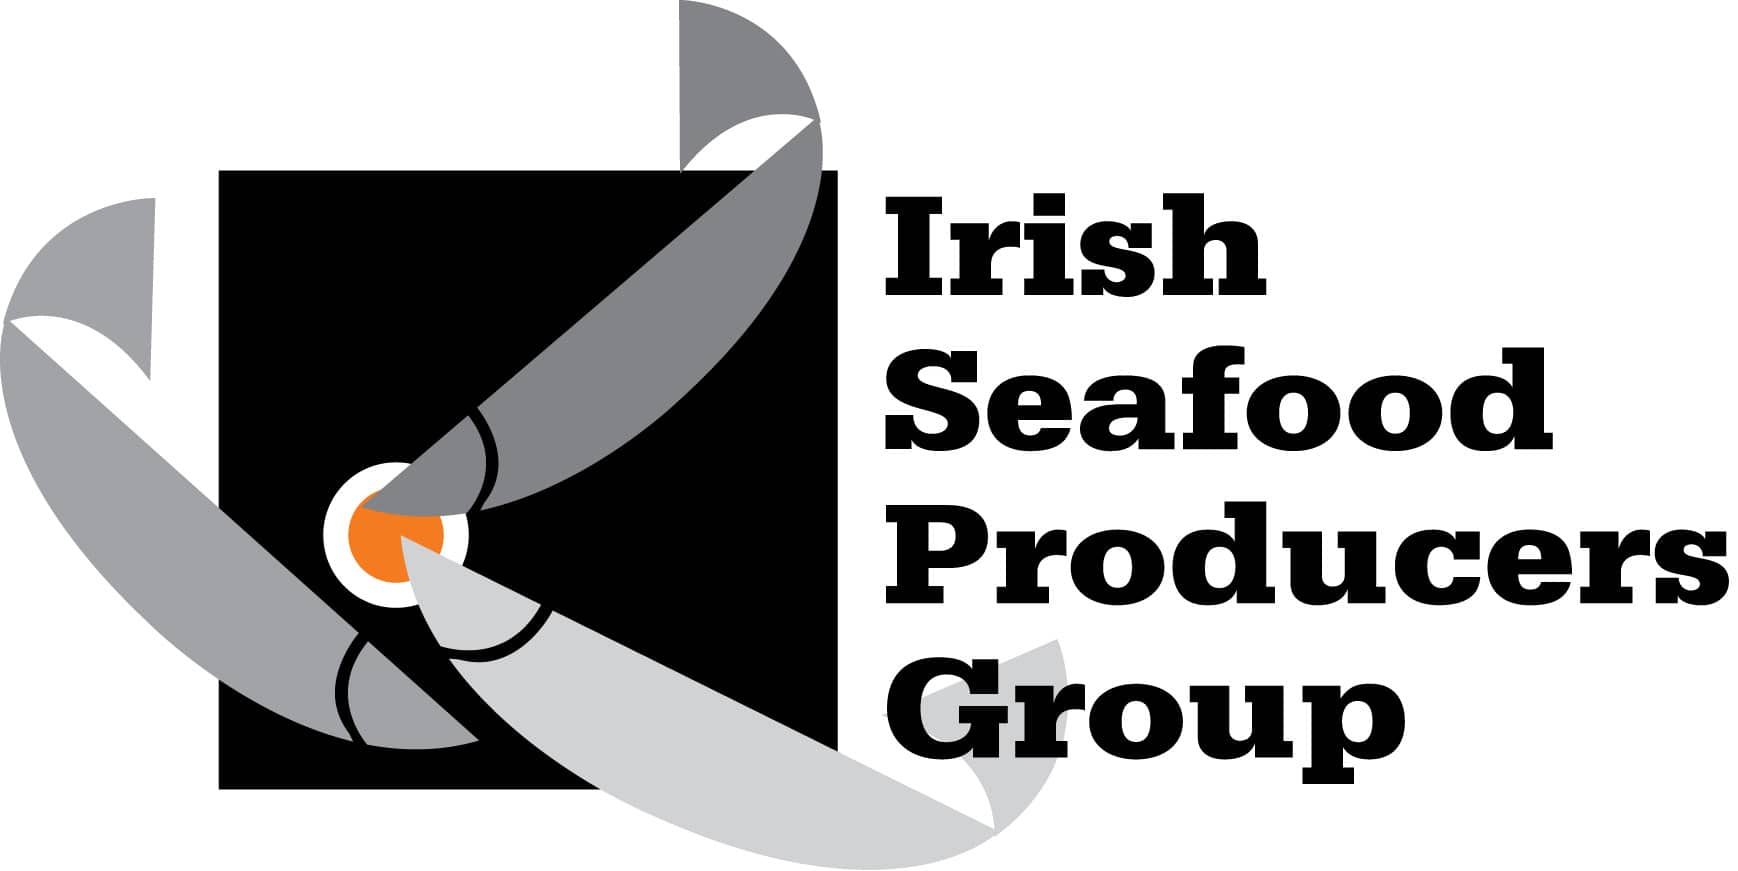 ISPG - Irish Seafood Producers Group, Galway